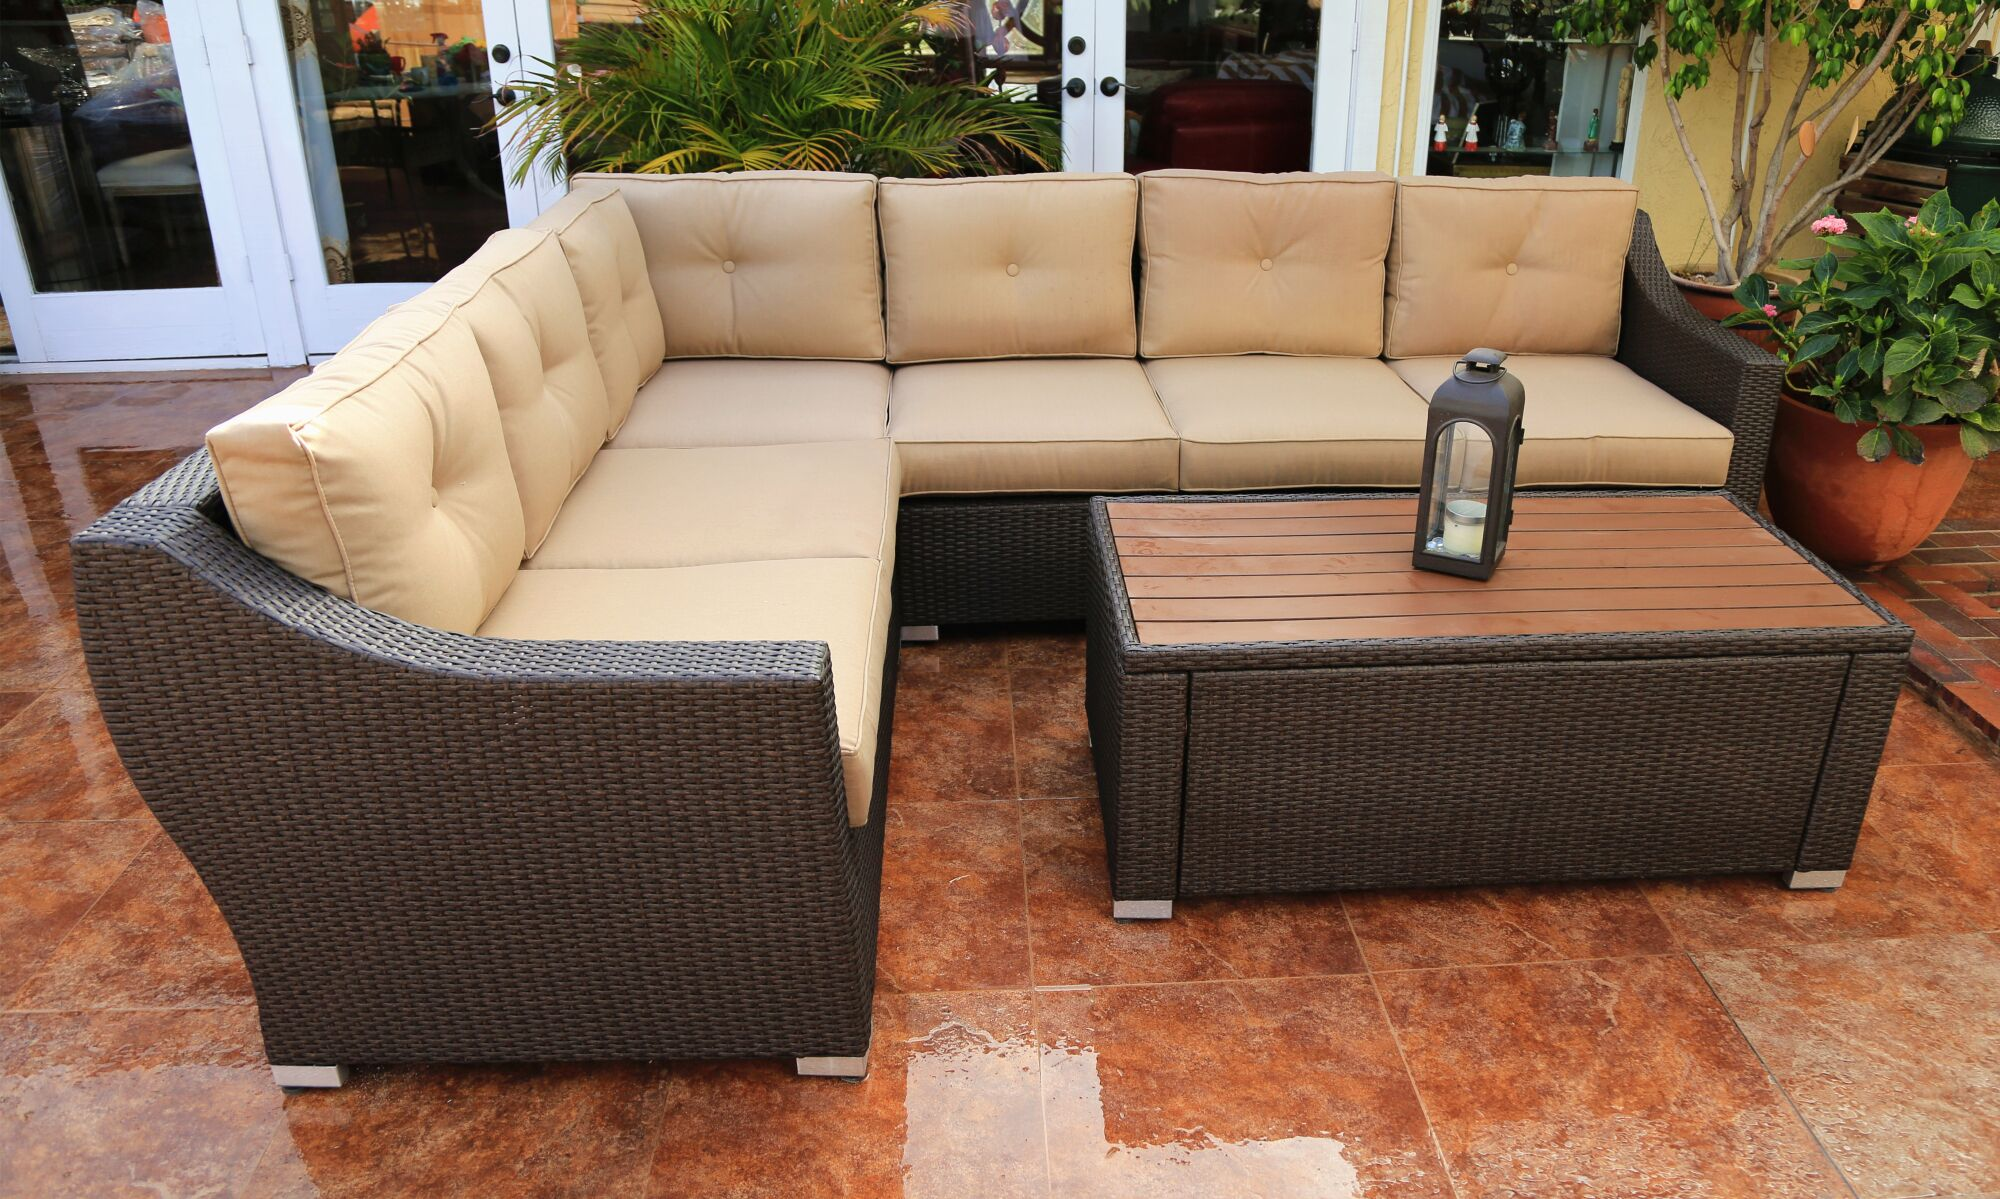 Tampa 7 Piece Sectional Seating Group with Cushions